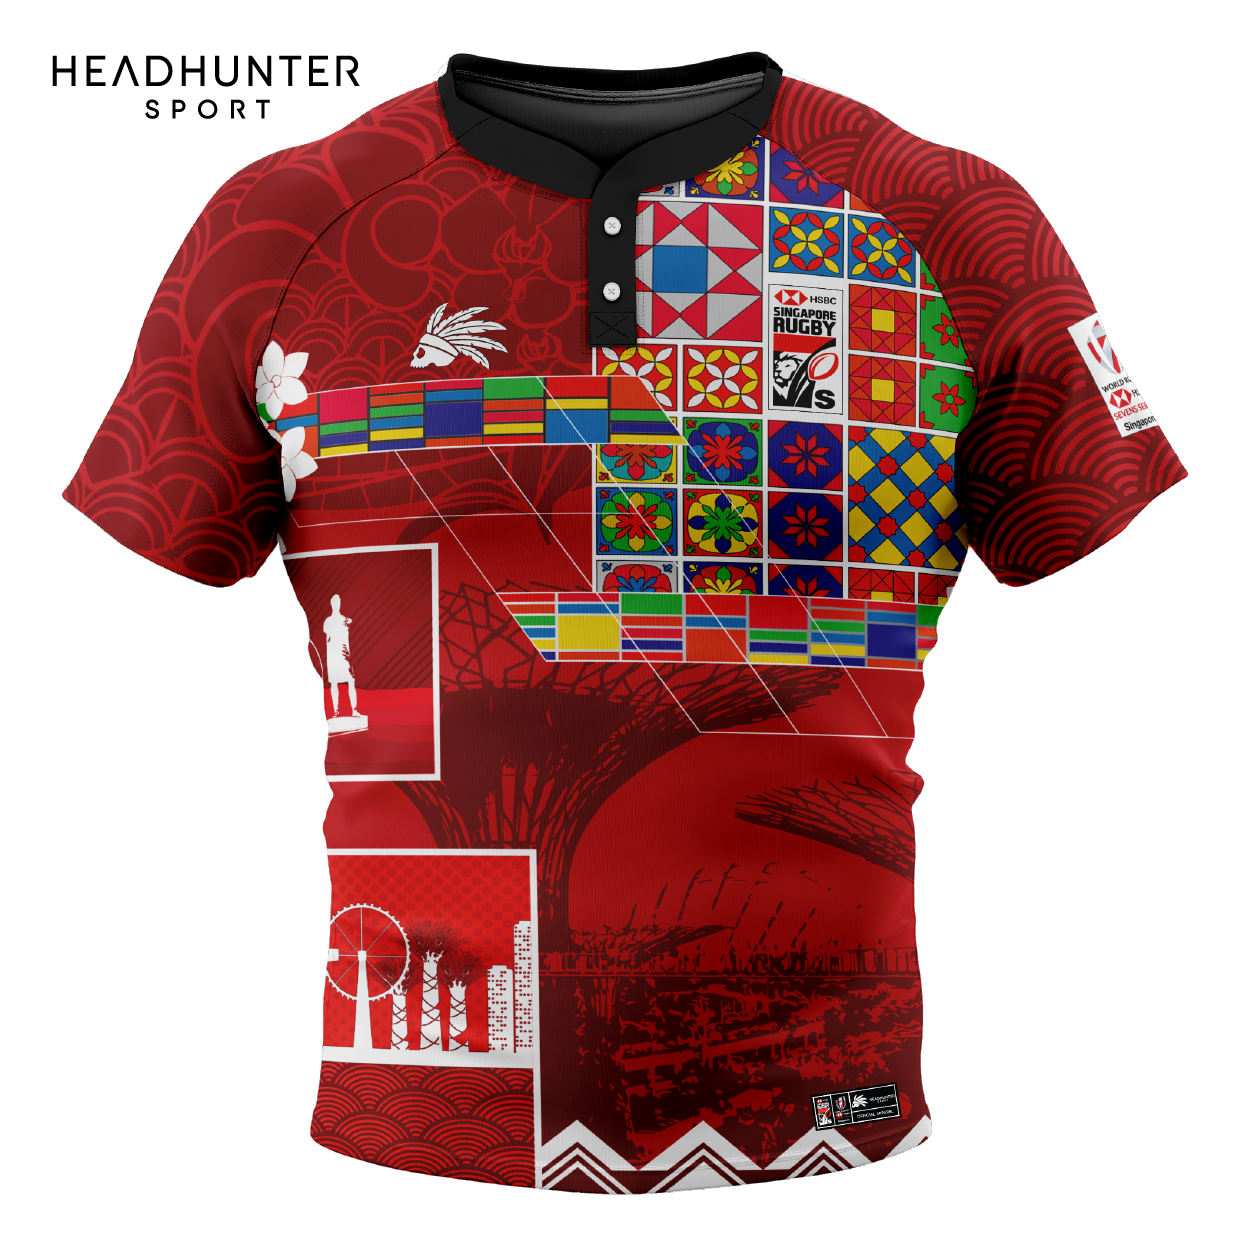 HSBC RUGBY 7S SERIES SINGAPORE 2019 MERCHANDISE JERSEY